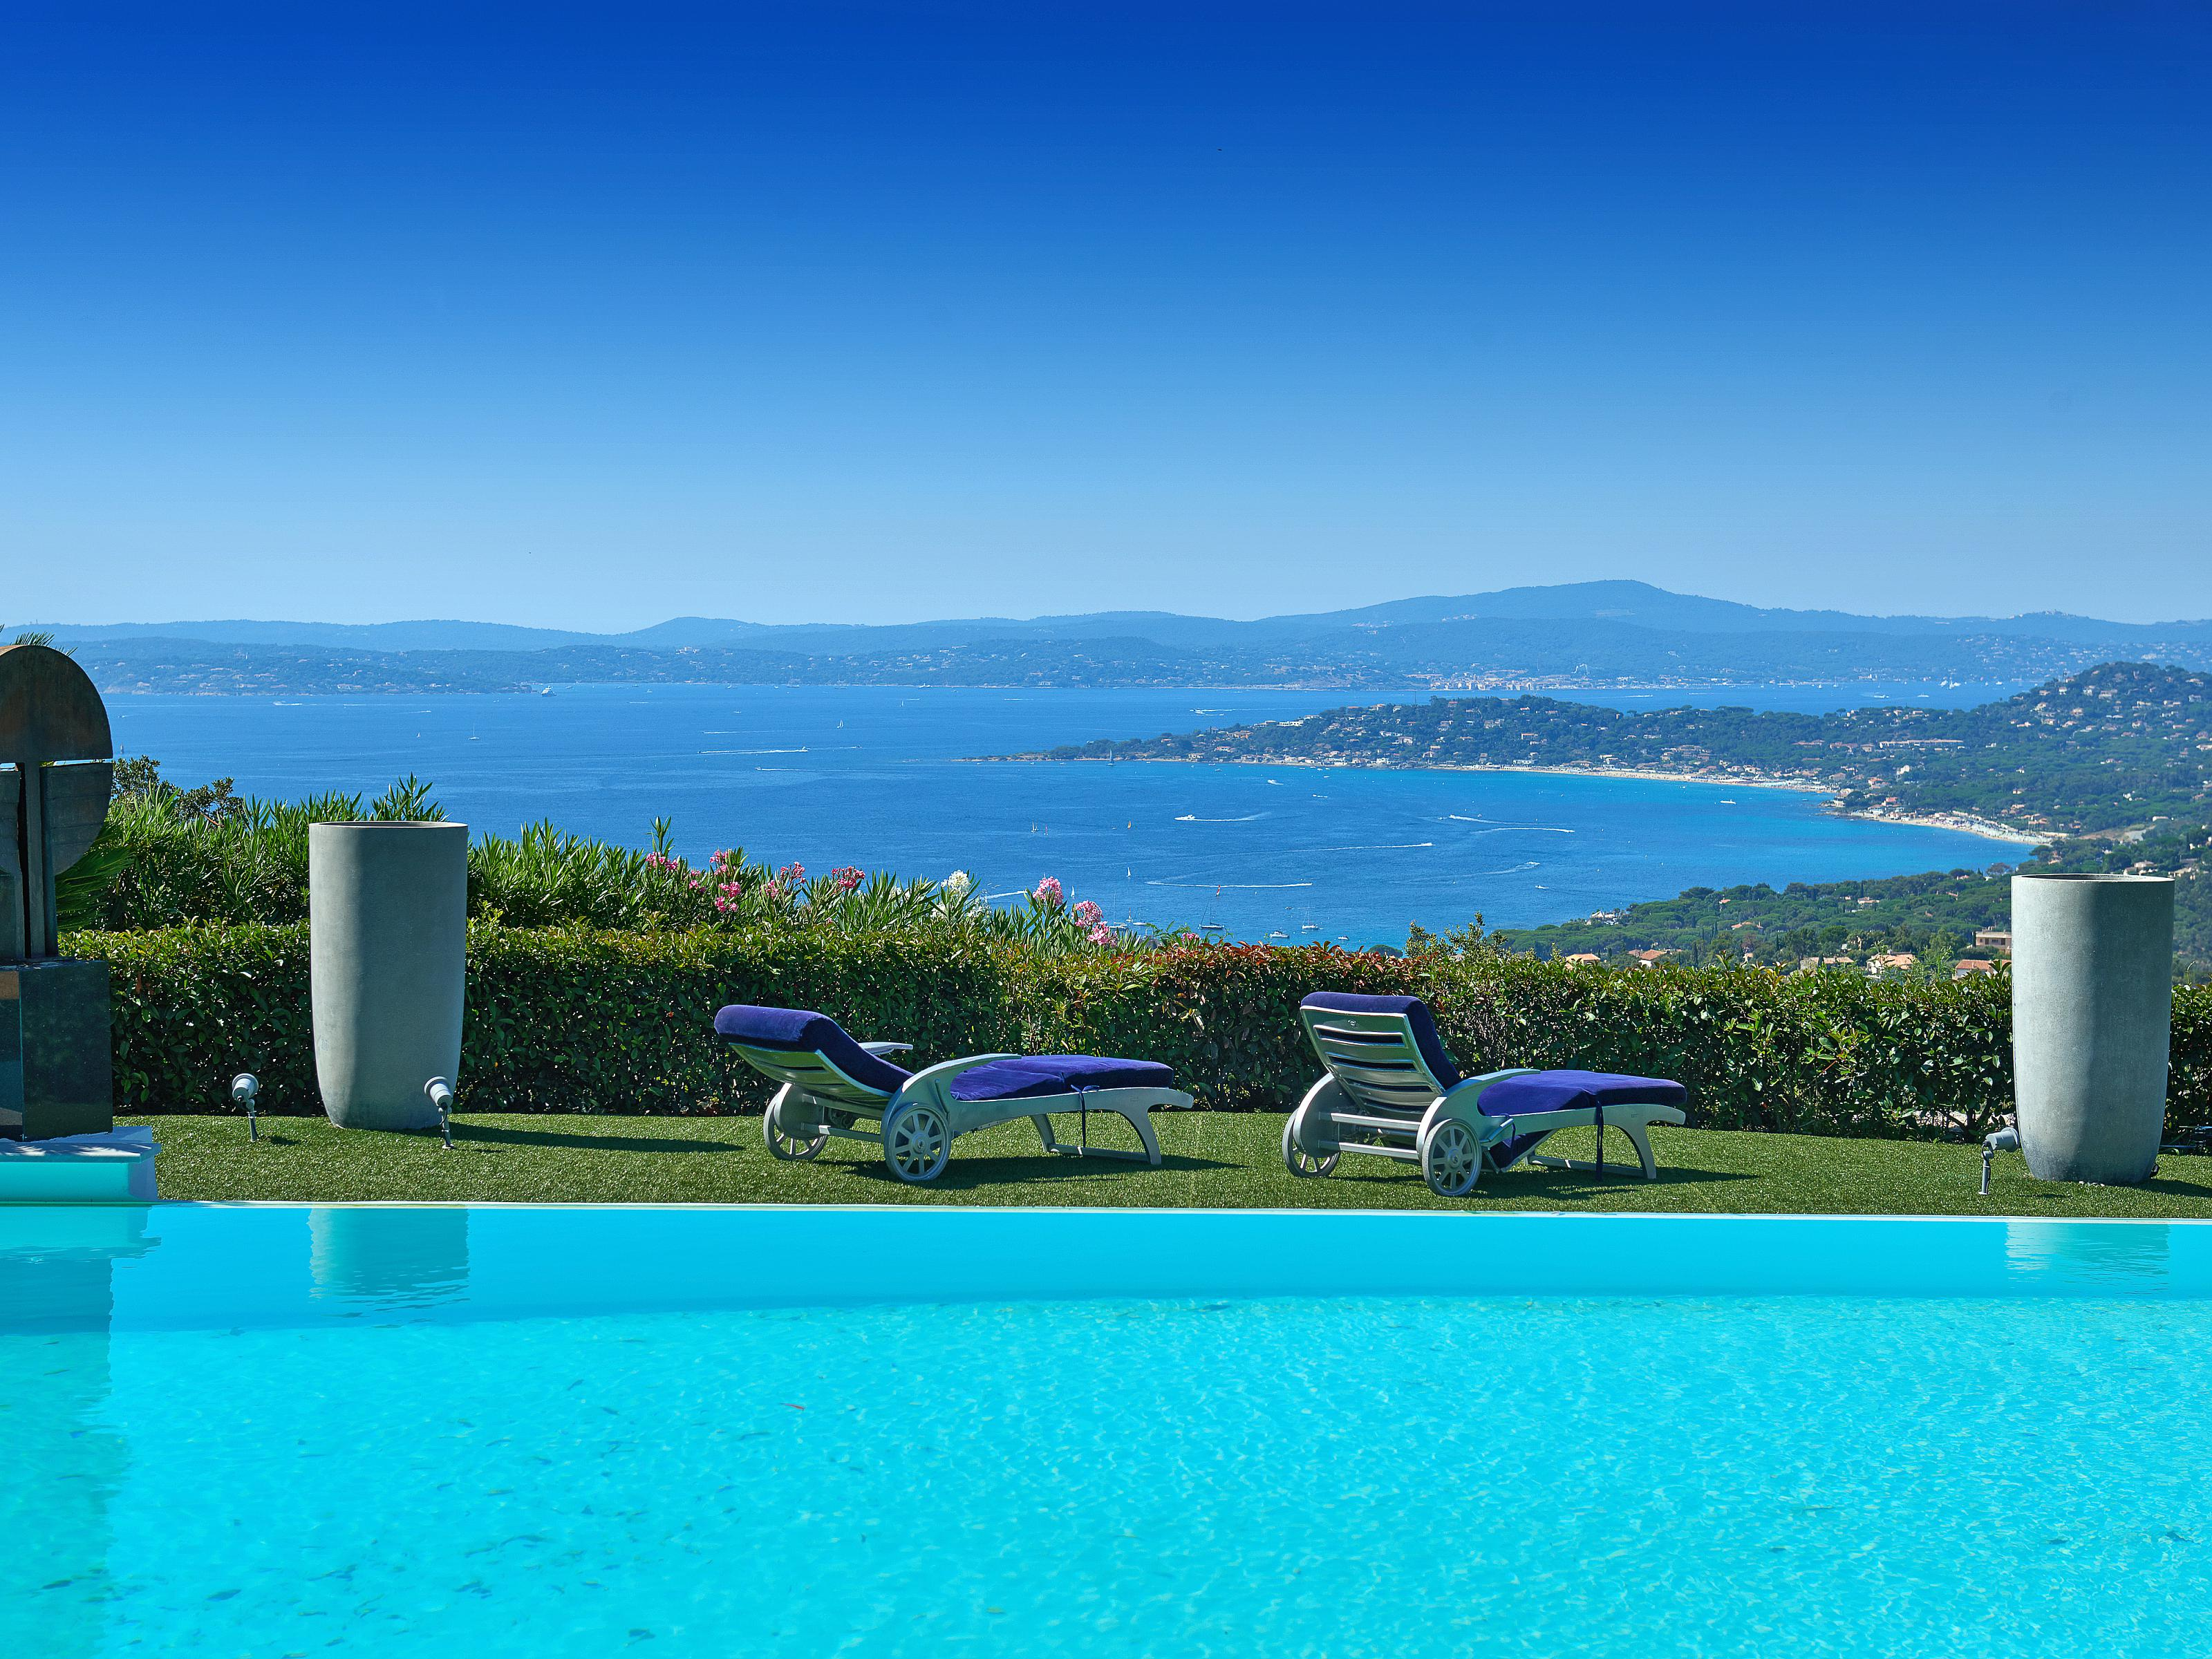 Maison unifamiliale pour l Vente à Luxurious Californian style villa with breathtaking views Saint Maxime Other Provence-Alpes-Cote D'Azur, Provence-Alpes-Cote D'Azur 83380 France